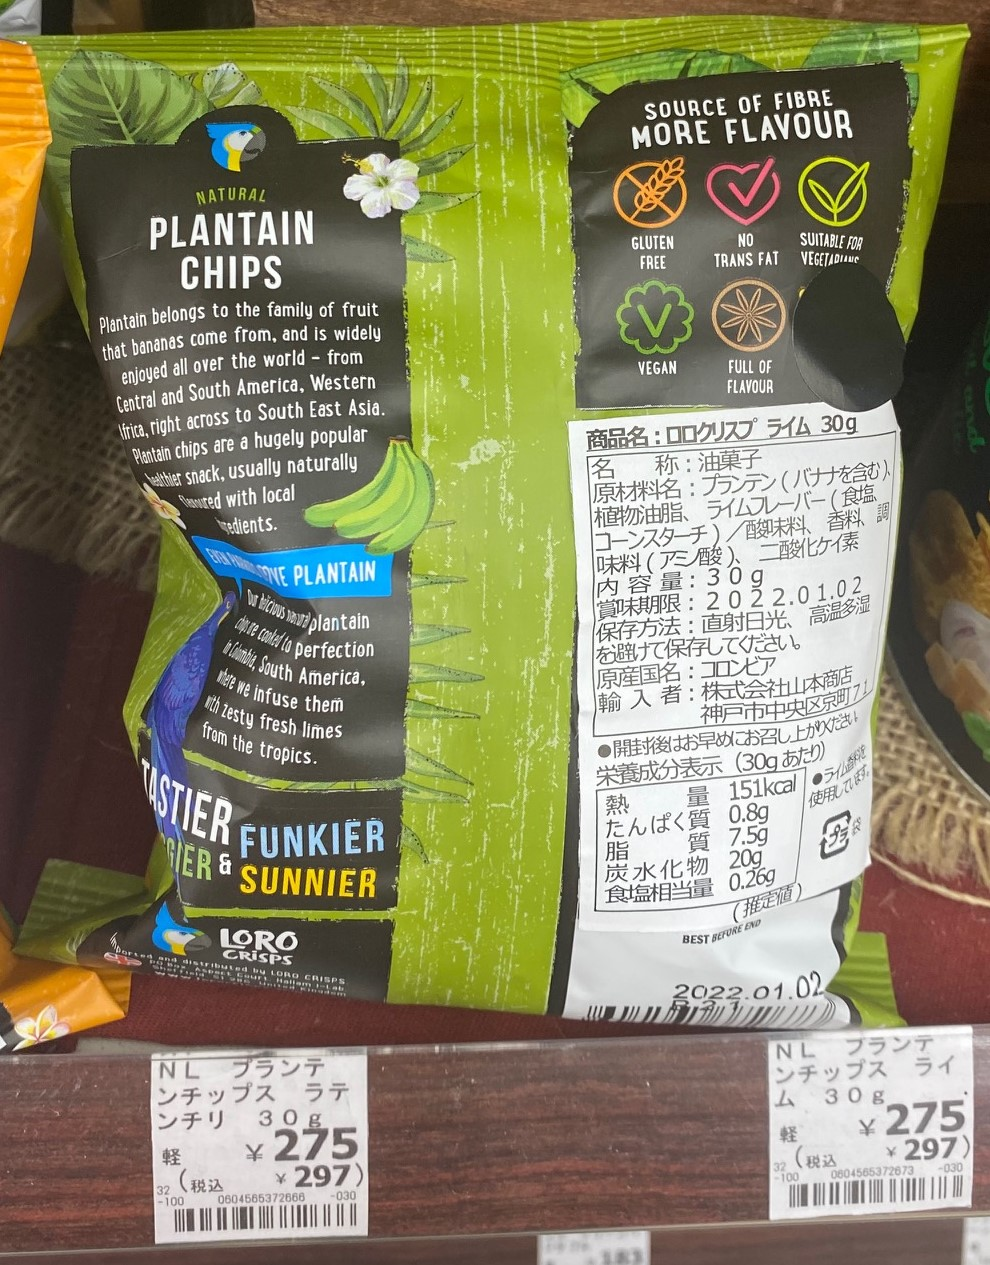 Loro Crisps Natural Plantain Chips Quimbaya Limon back of package